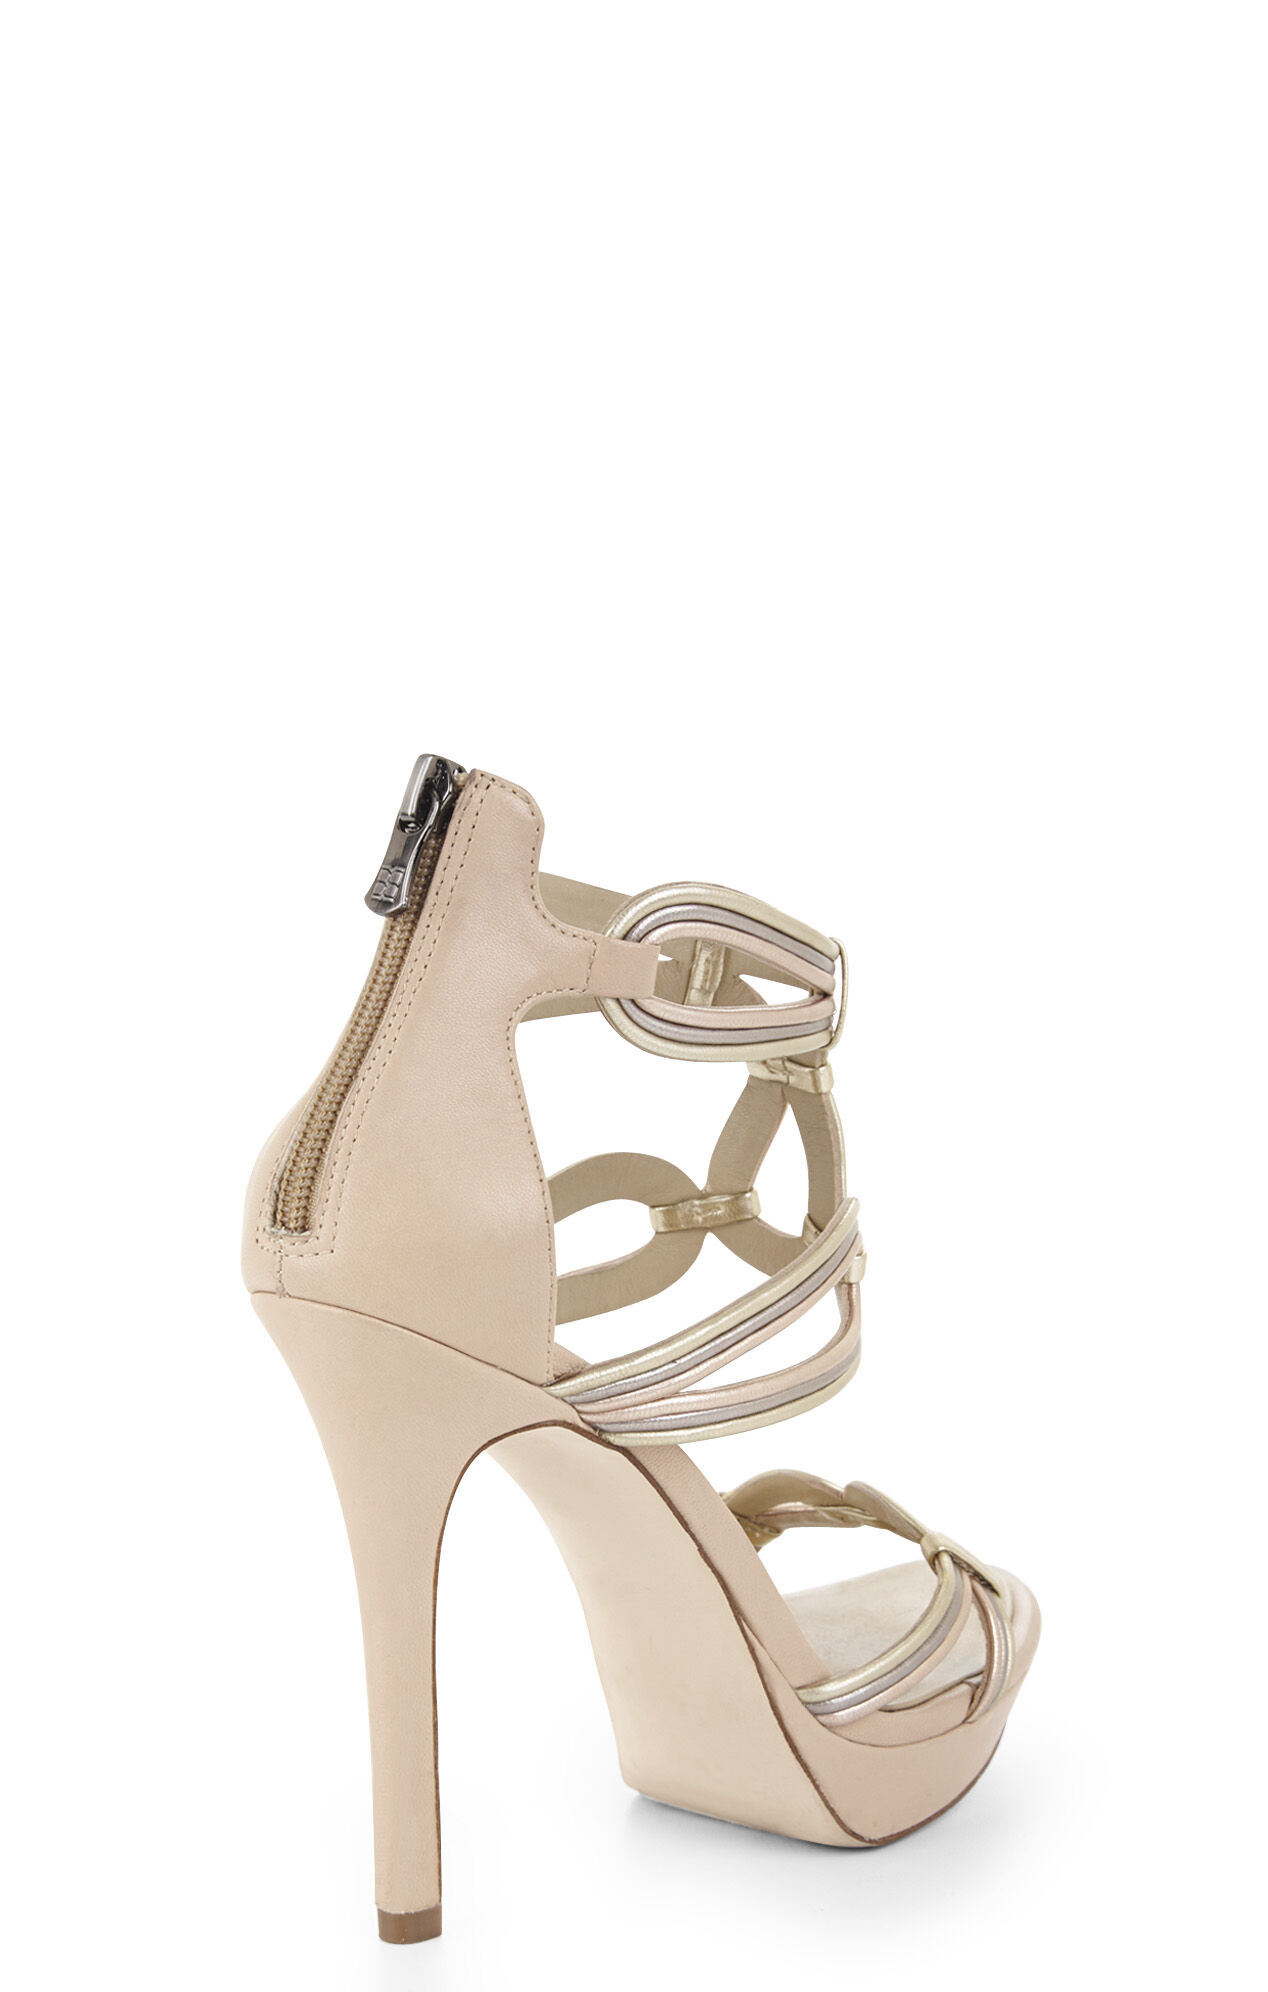 Leigh Corded High-Heel Sandal